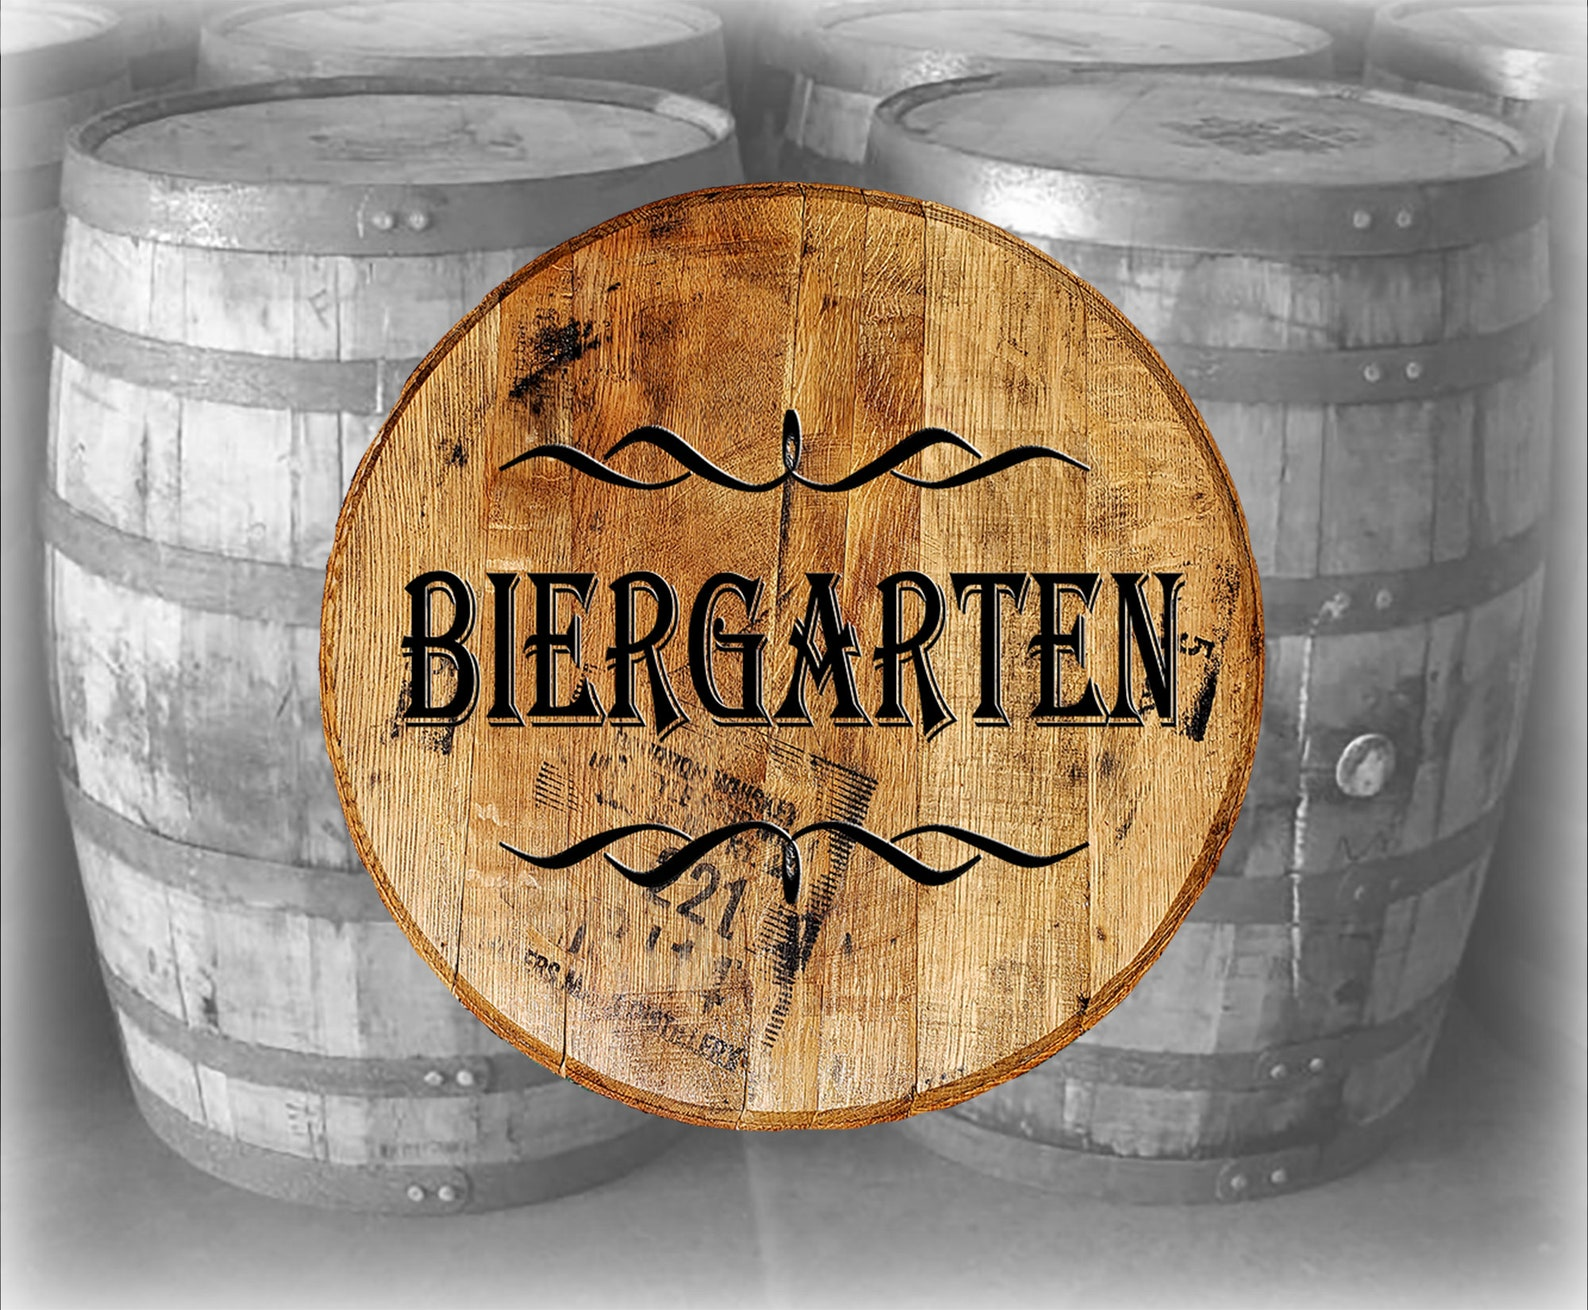 Reclaimed Wood Whiskey Barrel Head Biergarten German